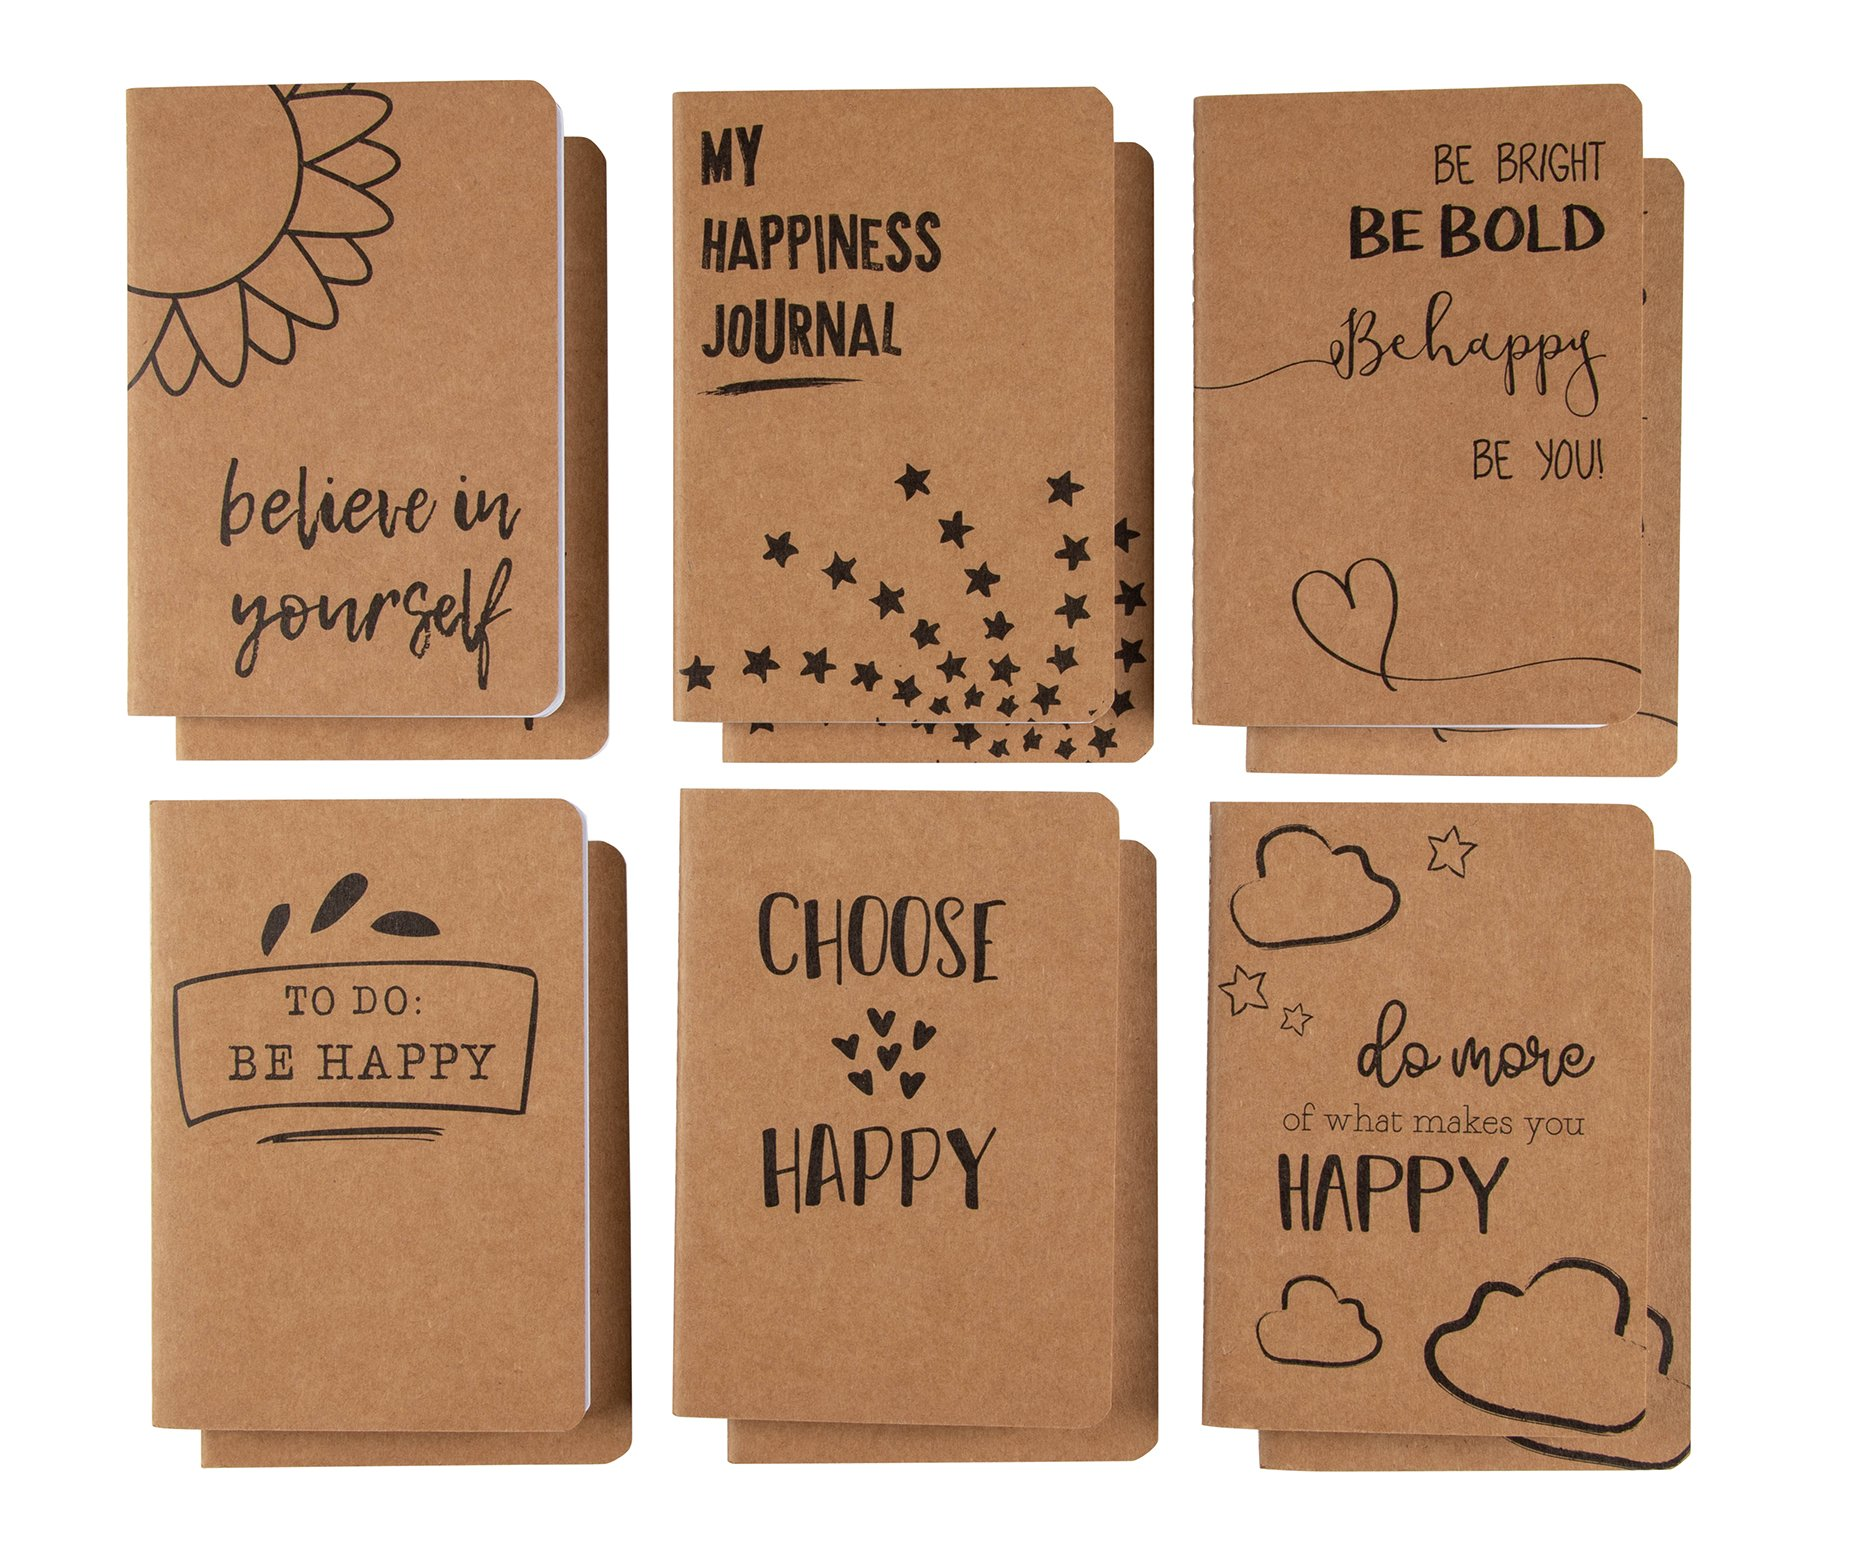 Kraft Notebook Bulk - 12-Pack Lined Pocket Notebook, Travel Journal Set for Diary, and Notes, 6 Different Happiness Designs, Soft Cover, 80 Pages, Brown, A6, 4.1 x 5.8 Inches by Paper Junkie